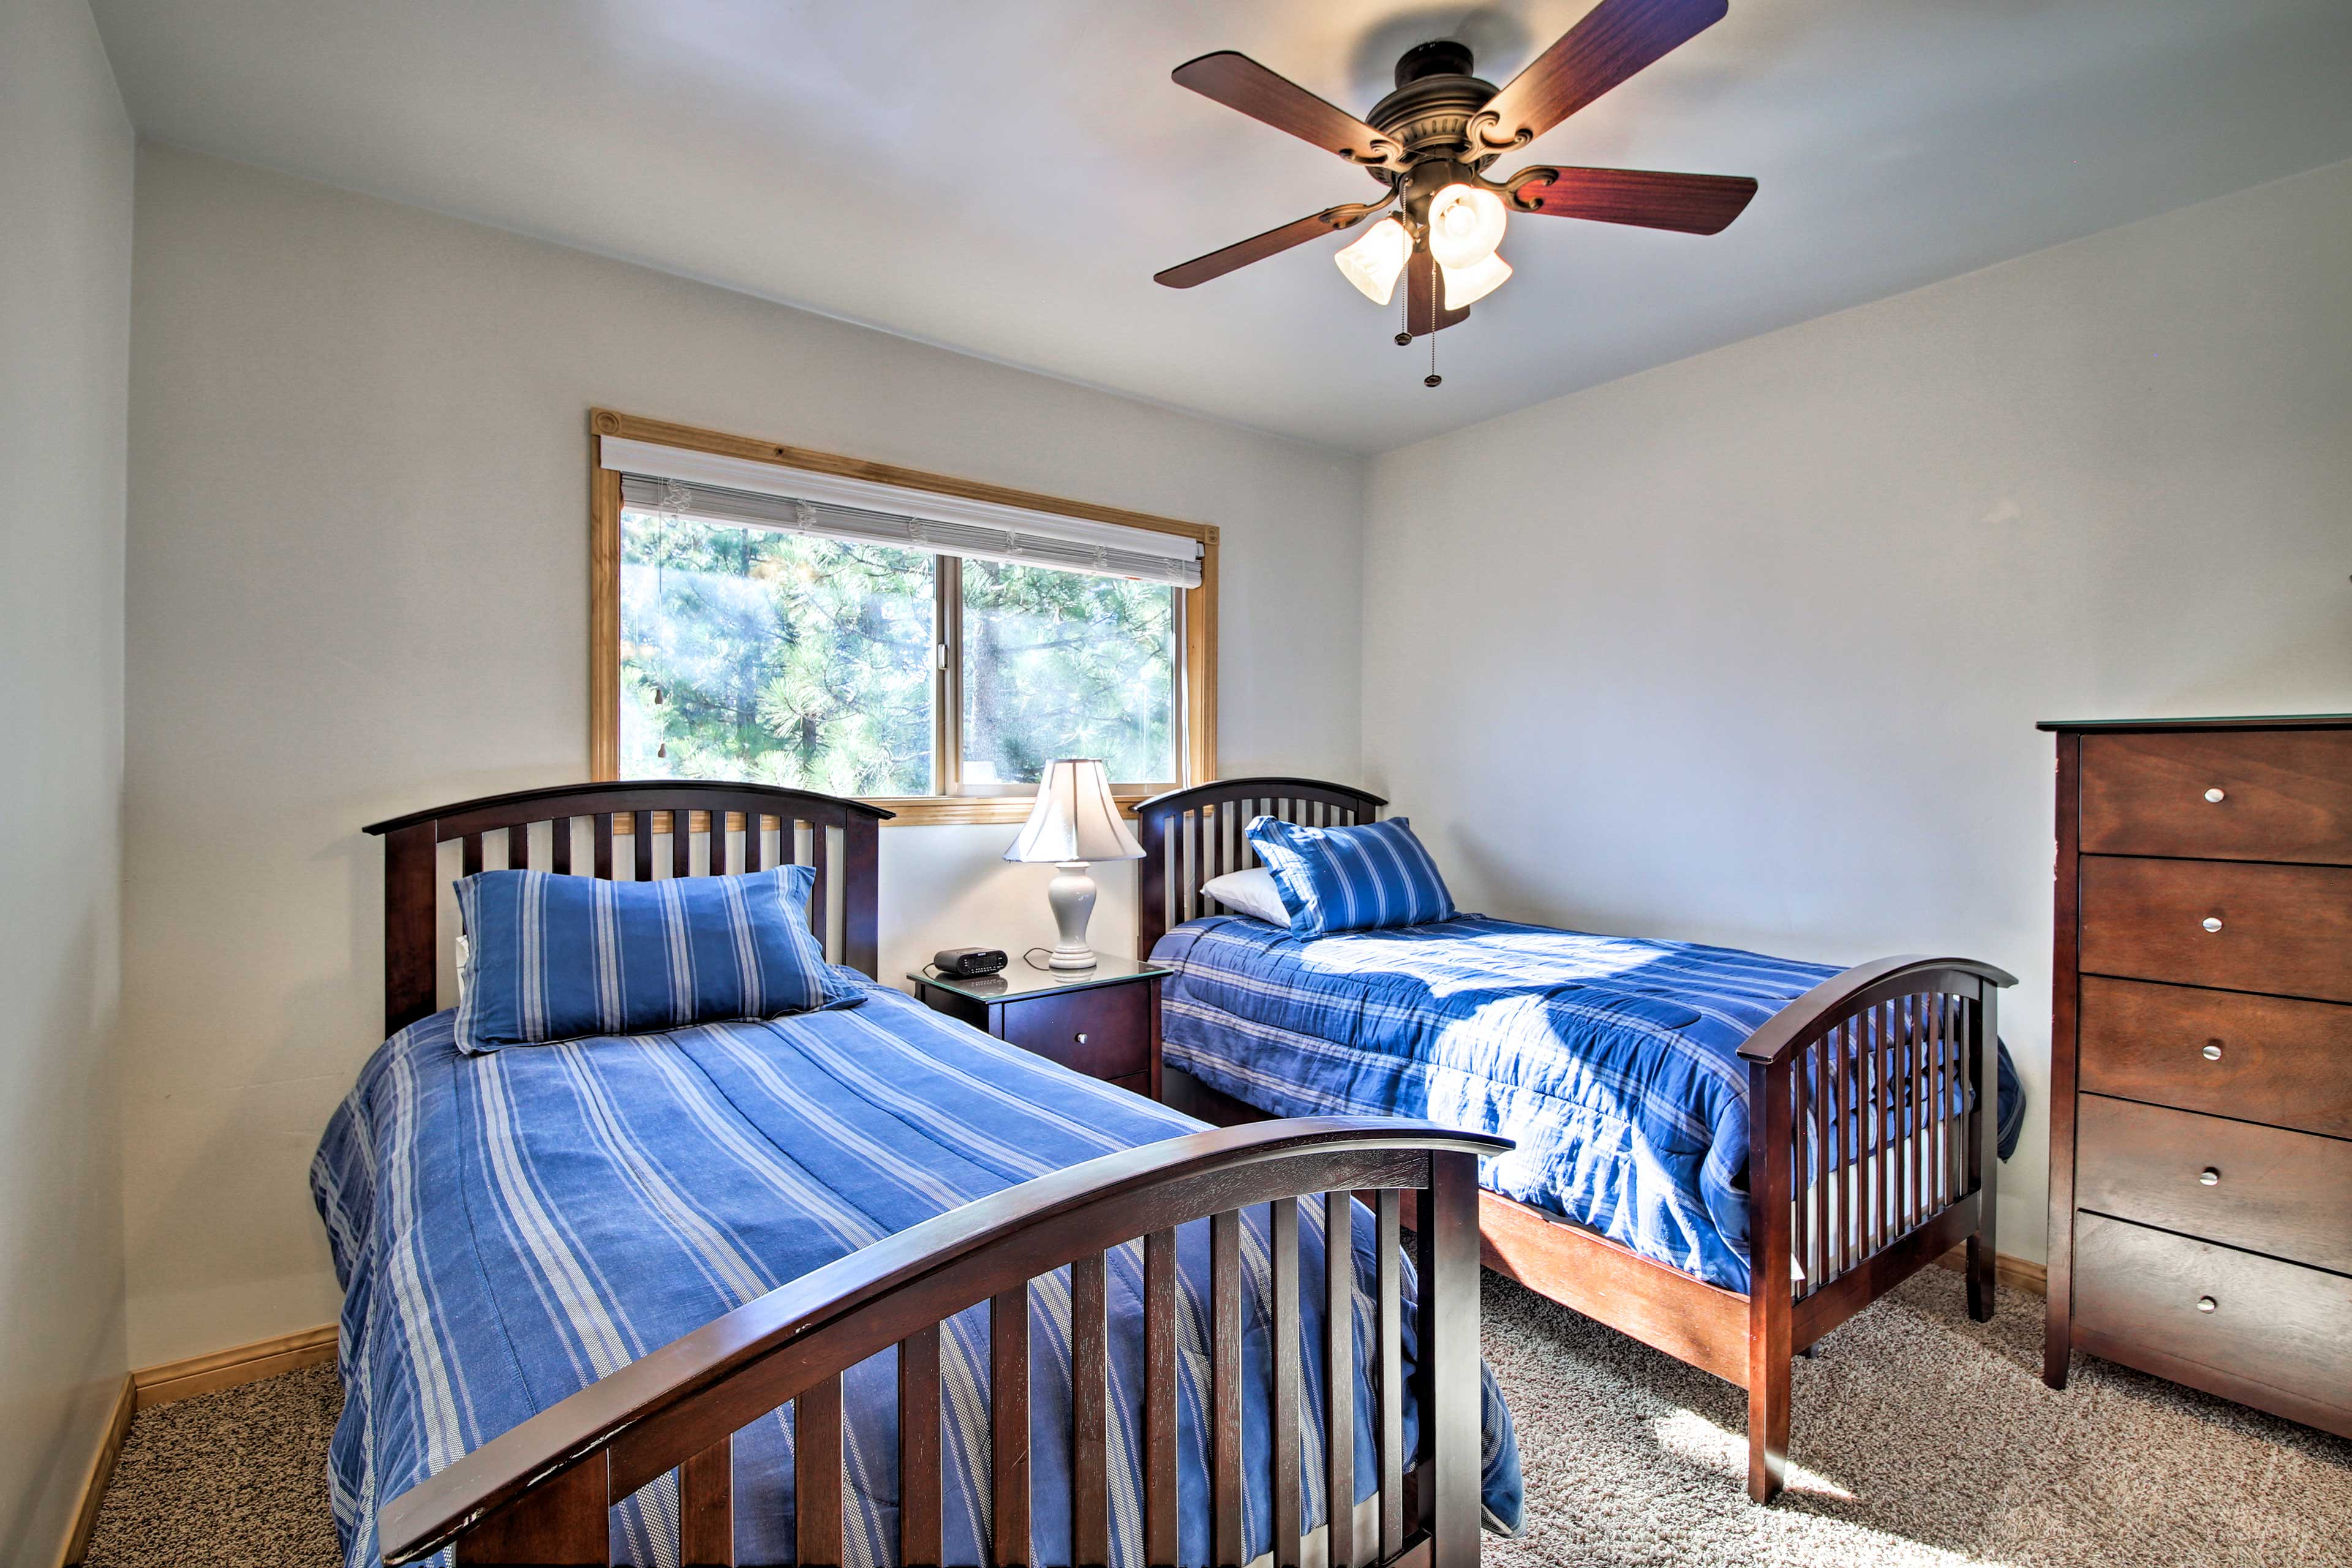 Sleep up to 2 guests in these cozy twin beds.